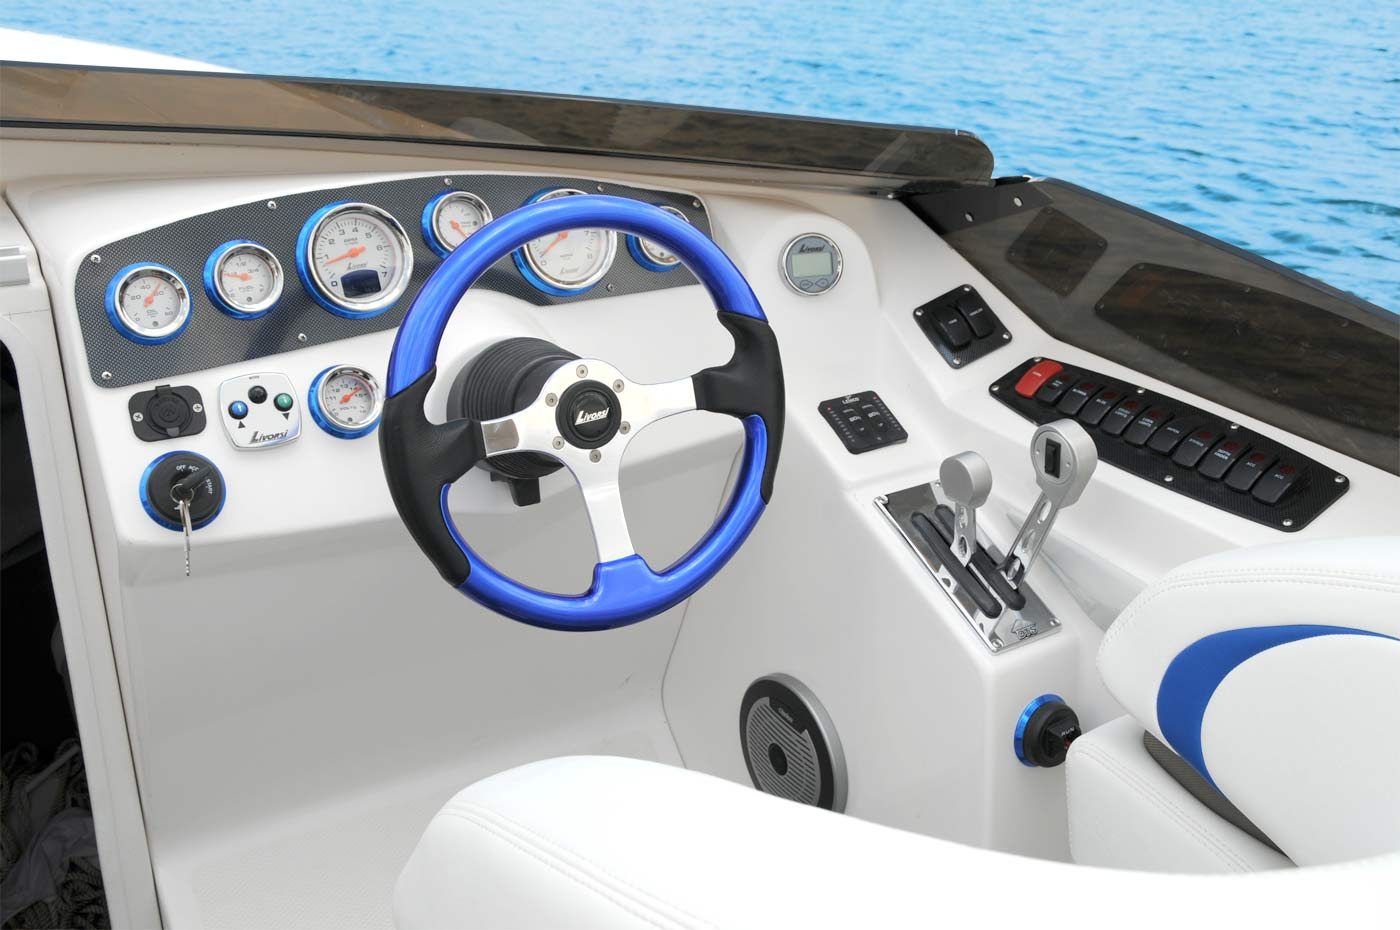 Standard dash equipment, Livorsi gauges and offshore style levers and dropout bolsters. Checkmate Convincor 260.